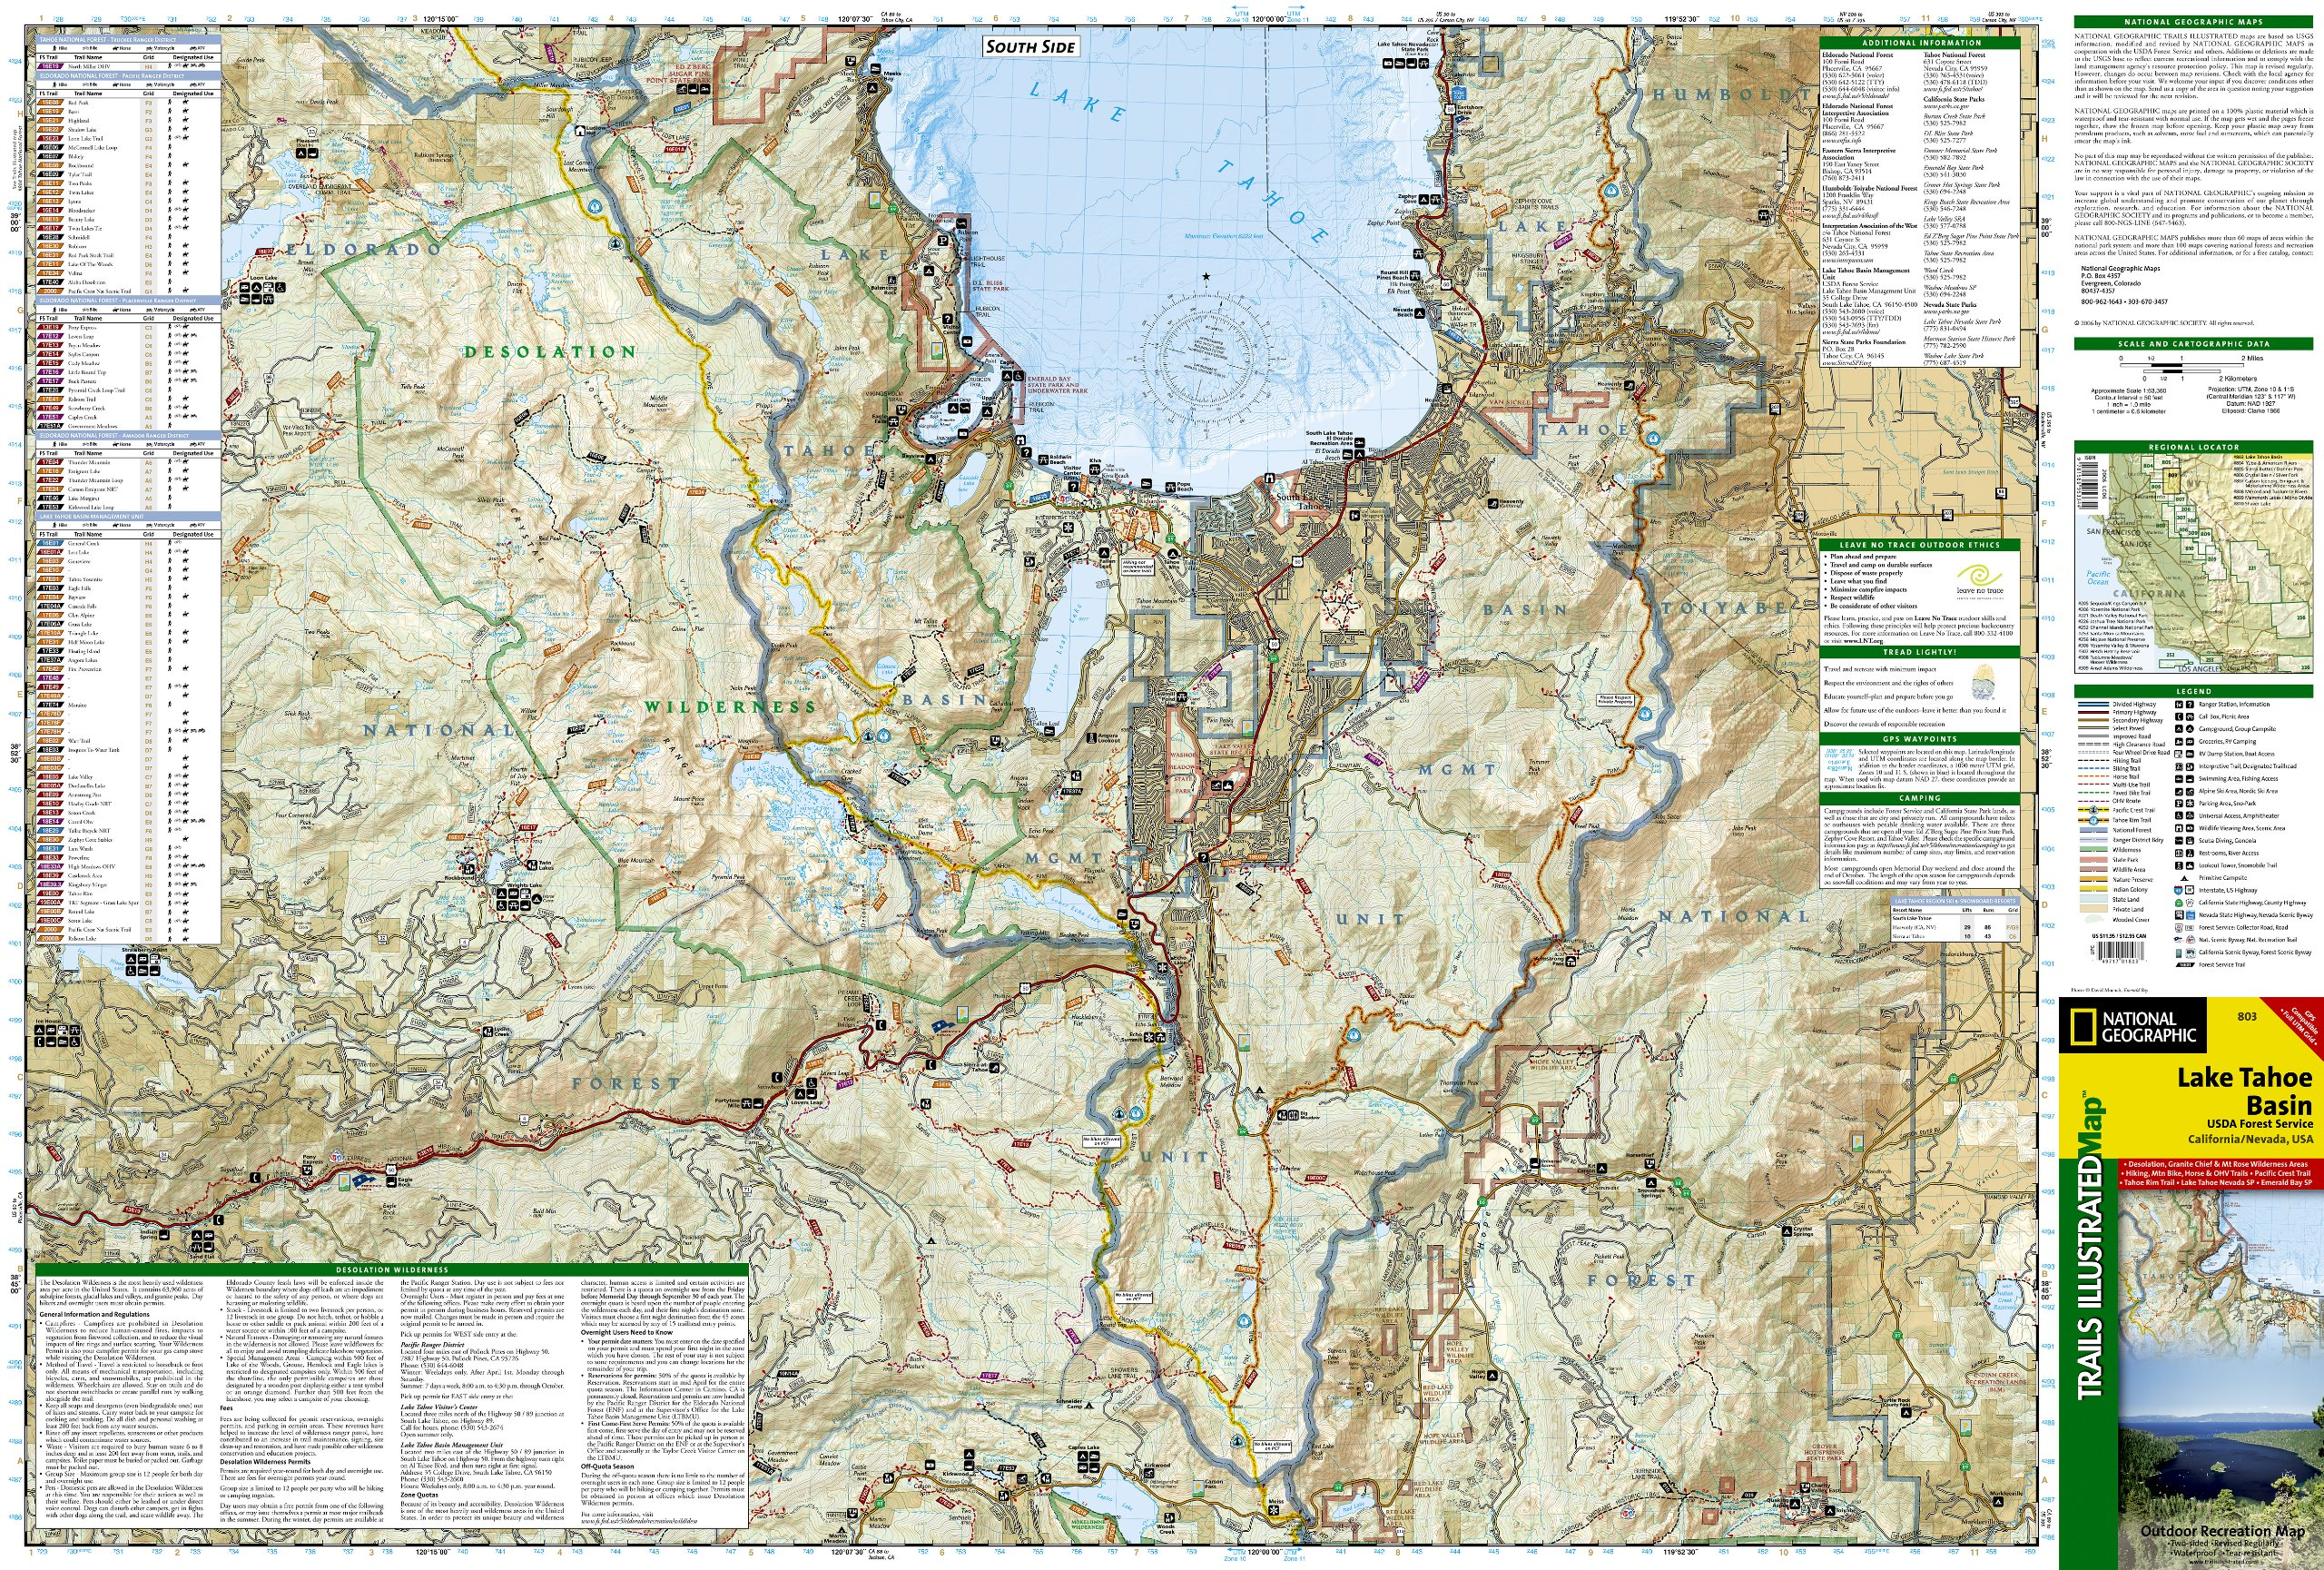 Lake Tahoe Bassin: National Geographic Trails Illustrated ...